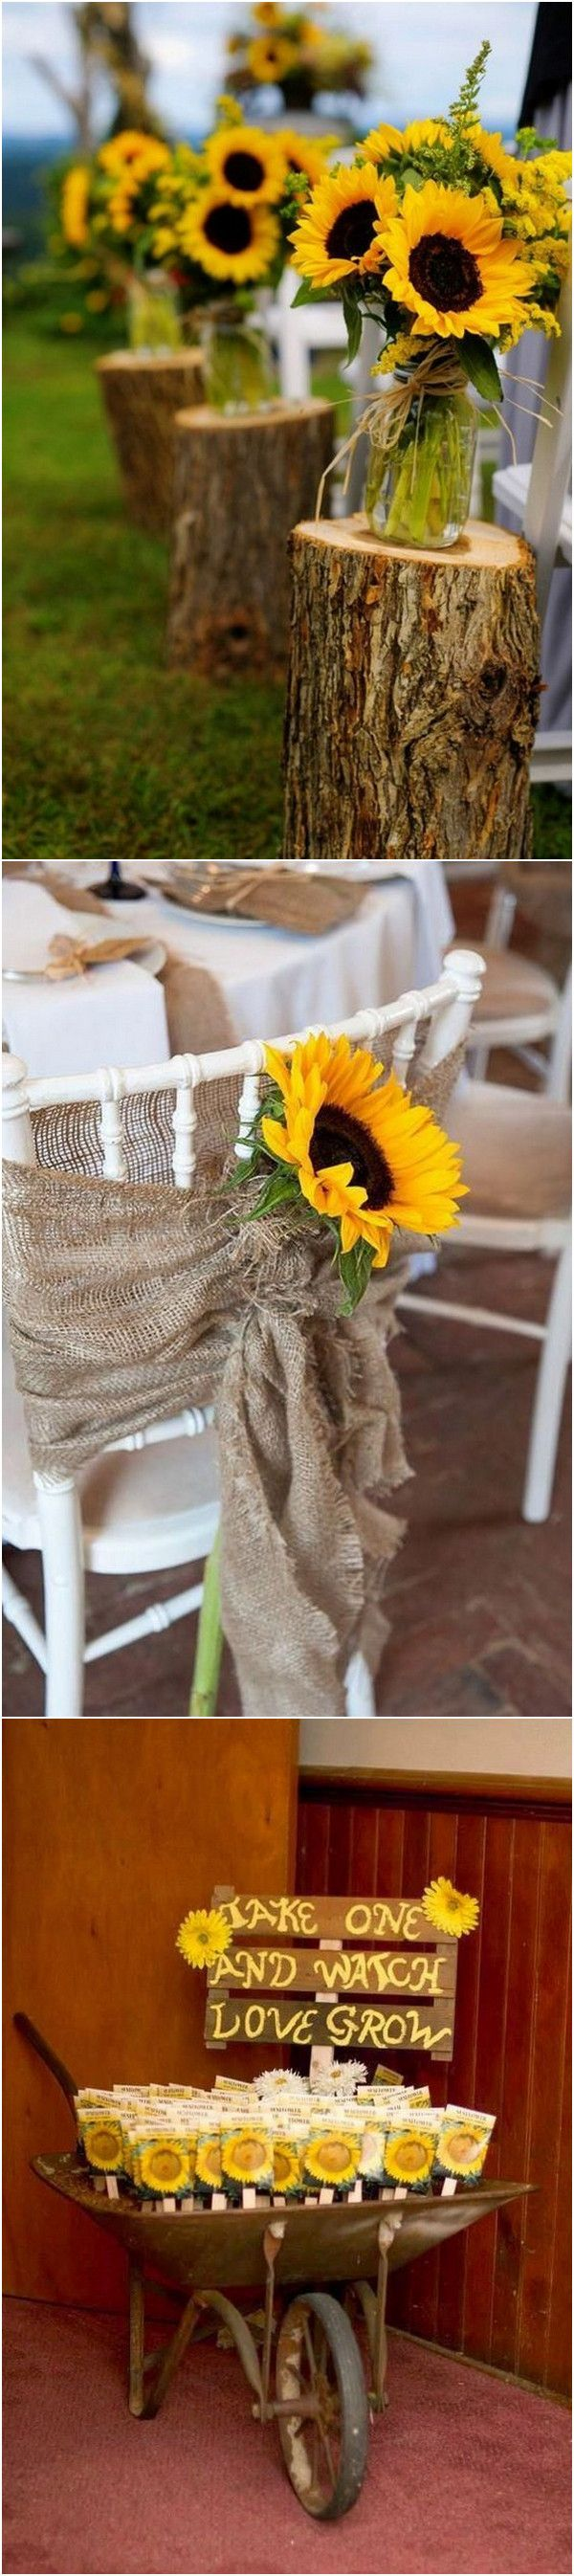 35 Pretty and Bright Sunflower Wedding Ideas (With images